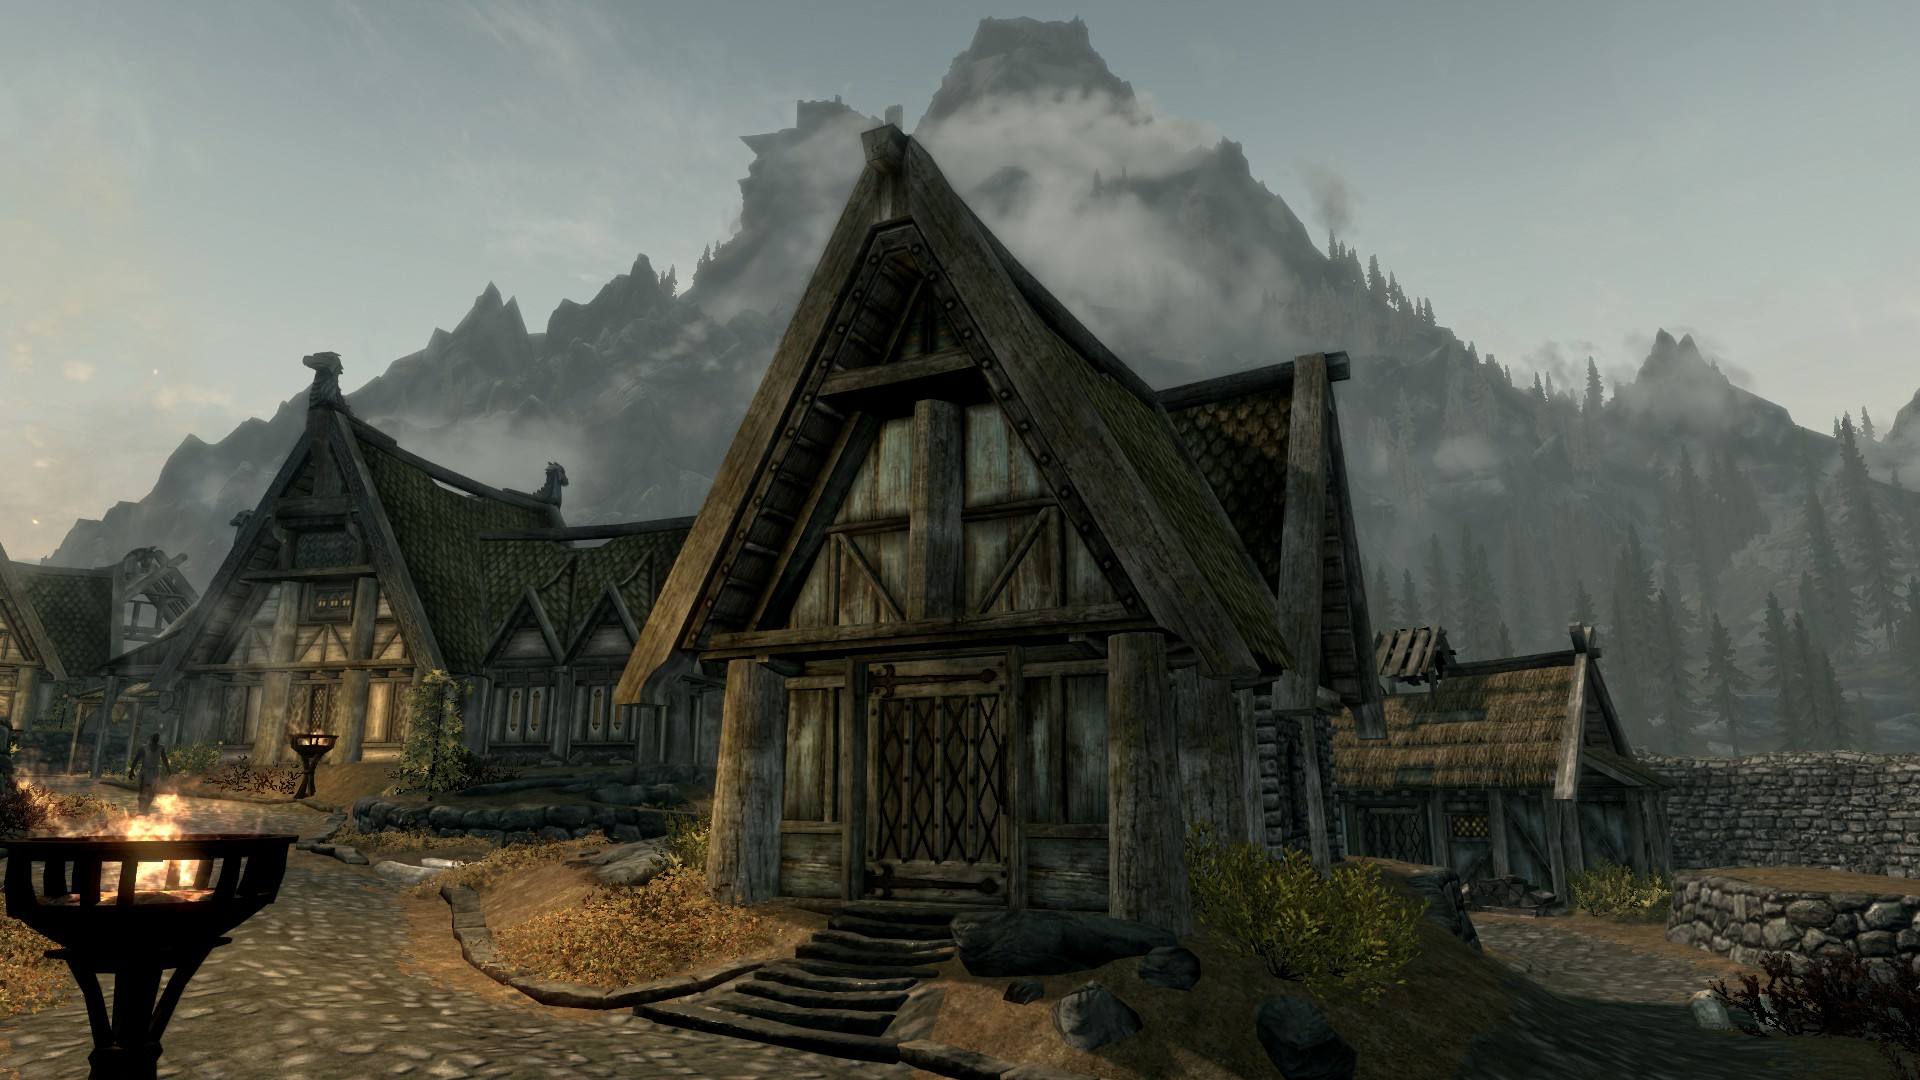 How Much Does It Cost To Buy Property In Skyrim